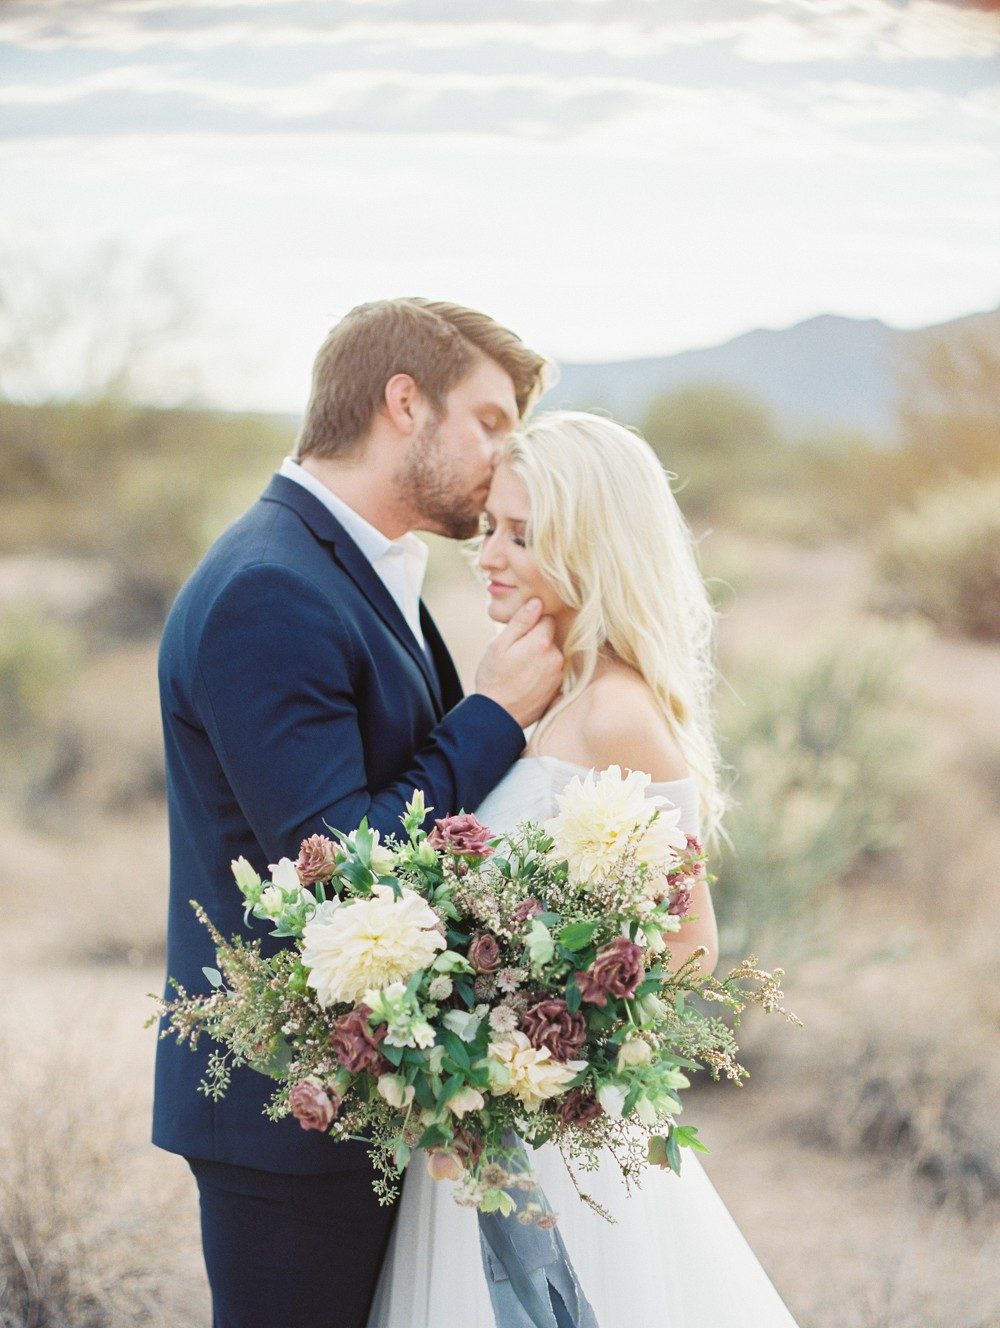 Romantic Desert Elopement during Sunset